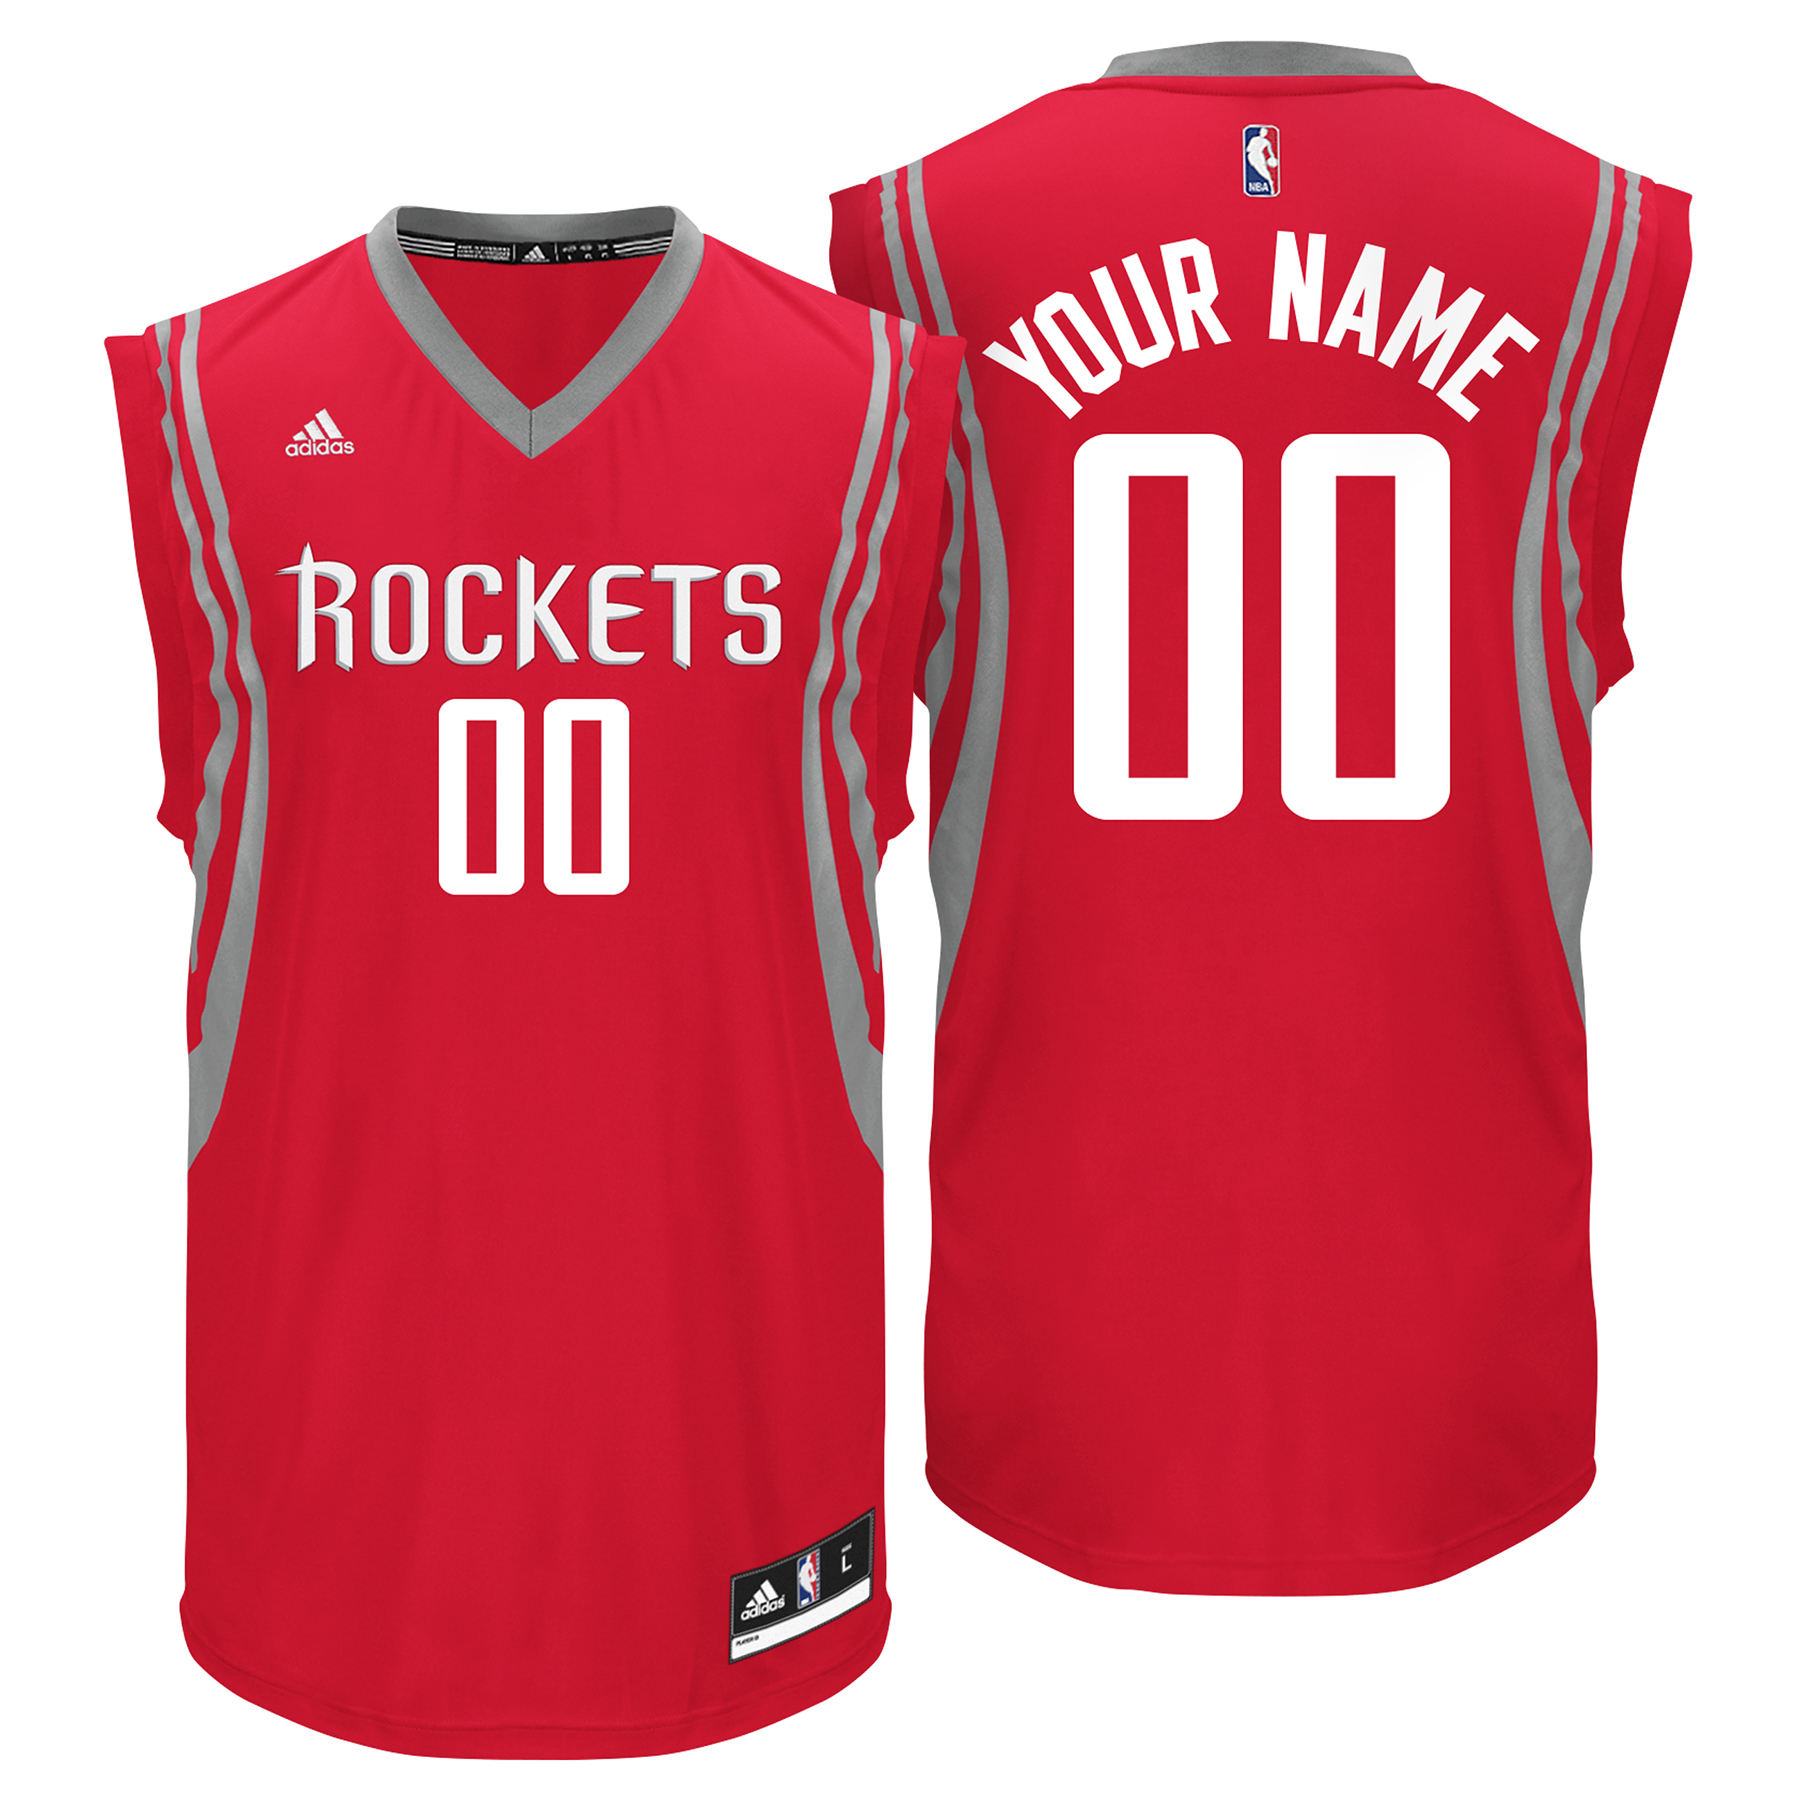 Houston Rockets Road Replica Jersey - Custom - Mens